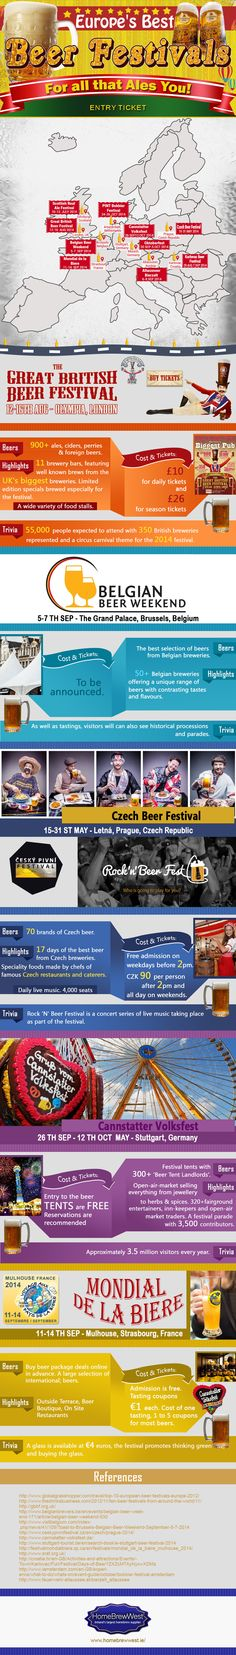 The Biggest Beer Festivals in Europe - Do you fancy an infographic? There are a lot of them online, but if you want your own please visit http://www.linfografico.com/prezzi/ Online girano molte infografiche, se ne vuoi realizzare una tutta tua visita http://www.linfografico.com/prezzi/